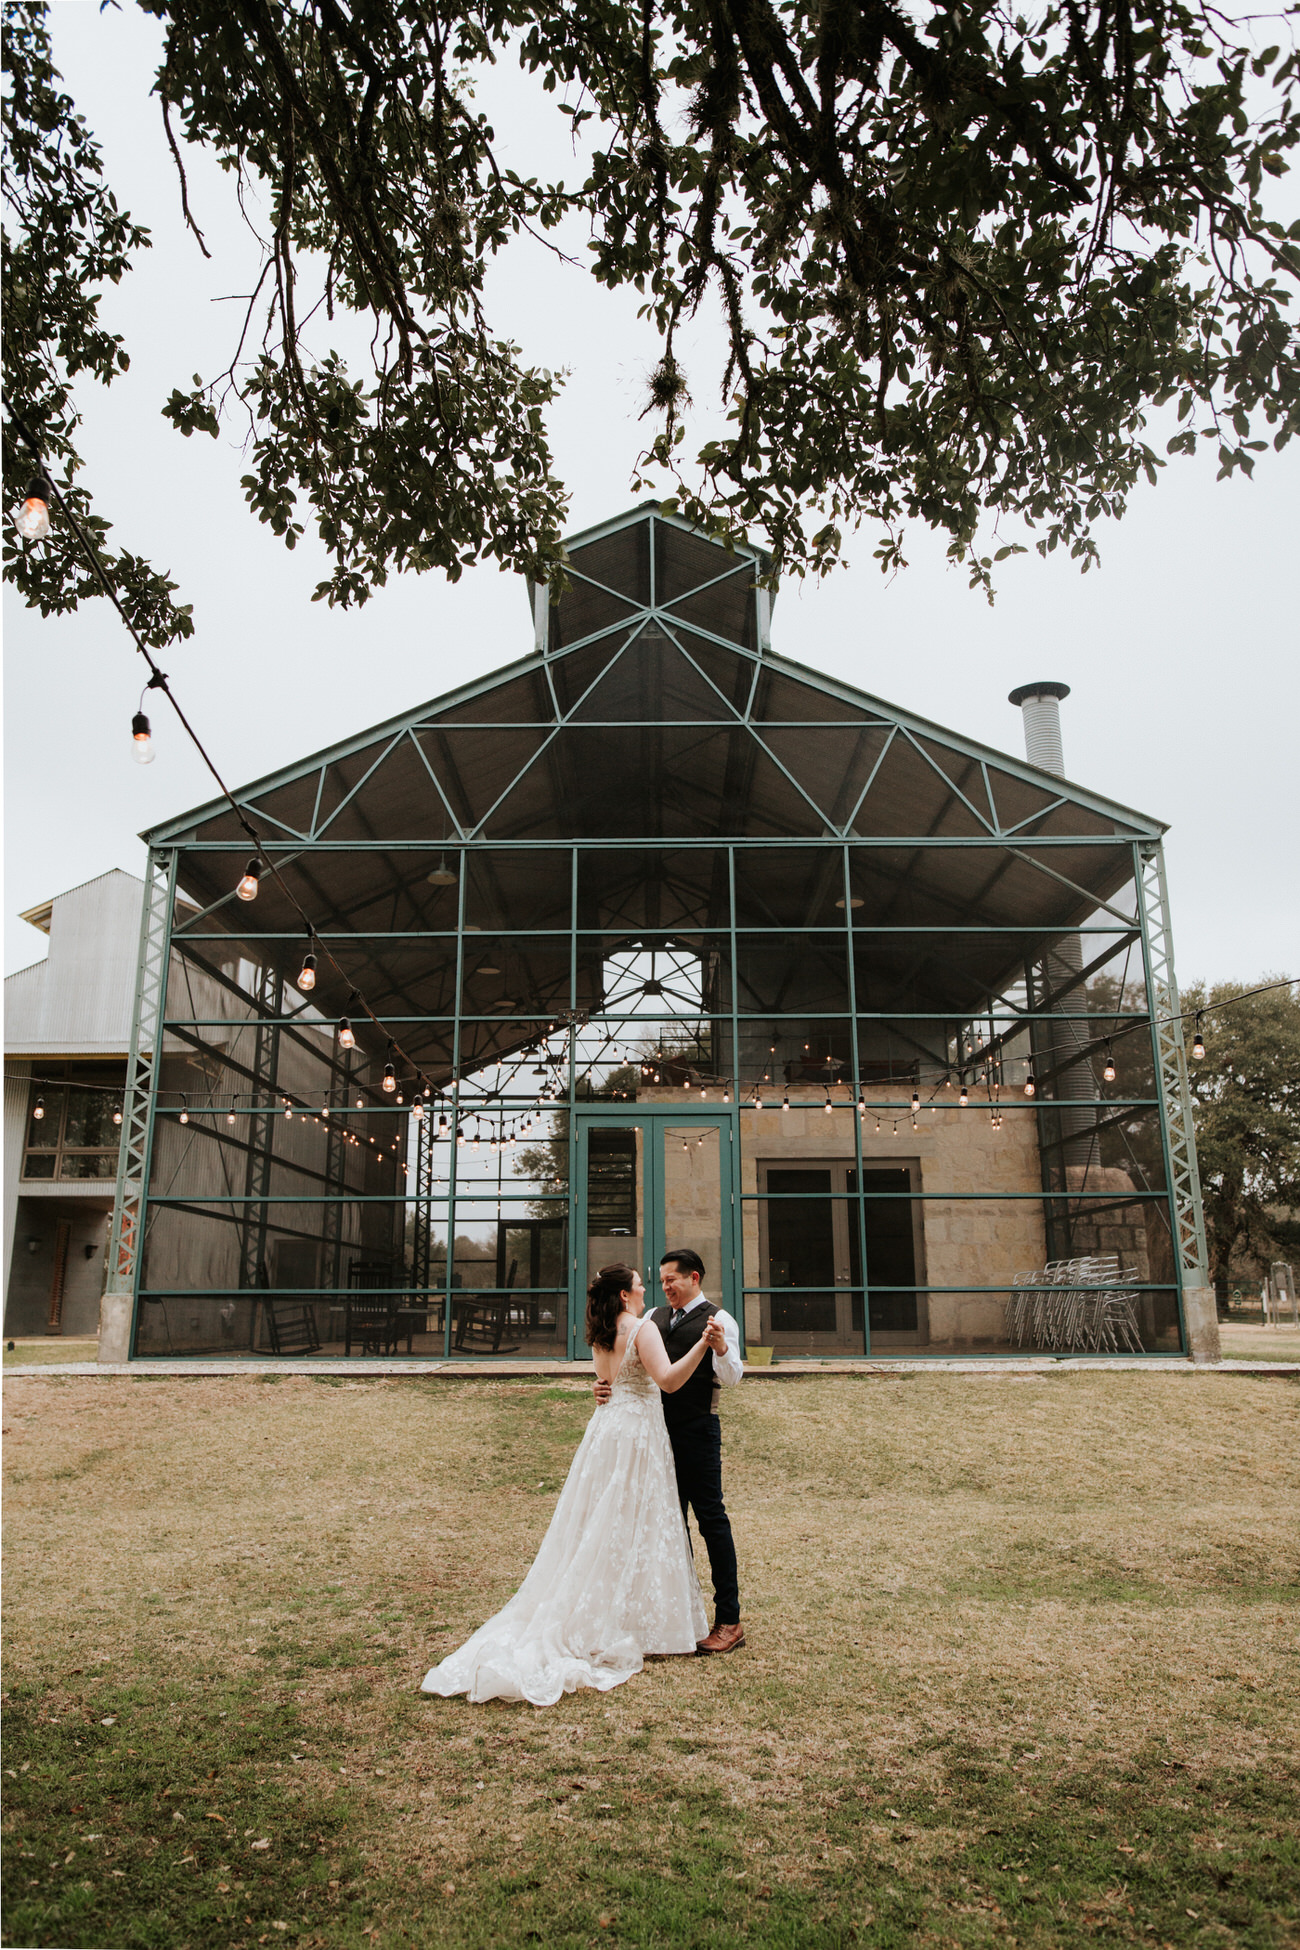 Bride and groom in front of venue